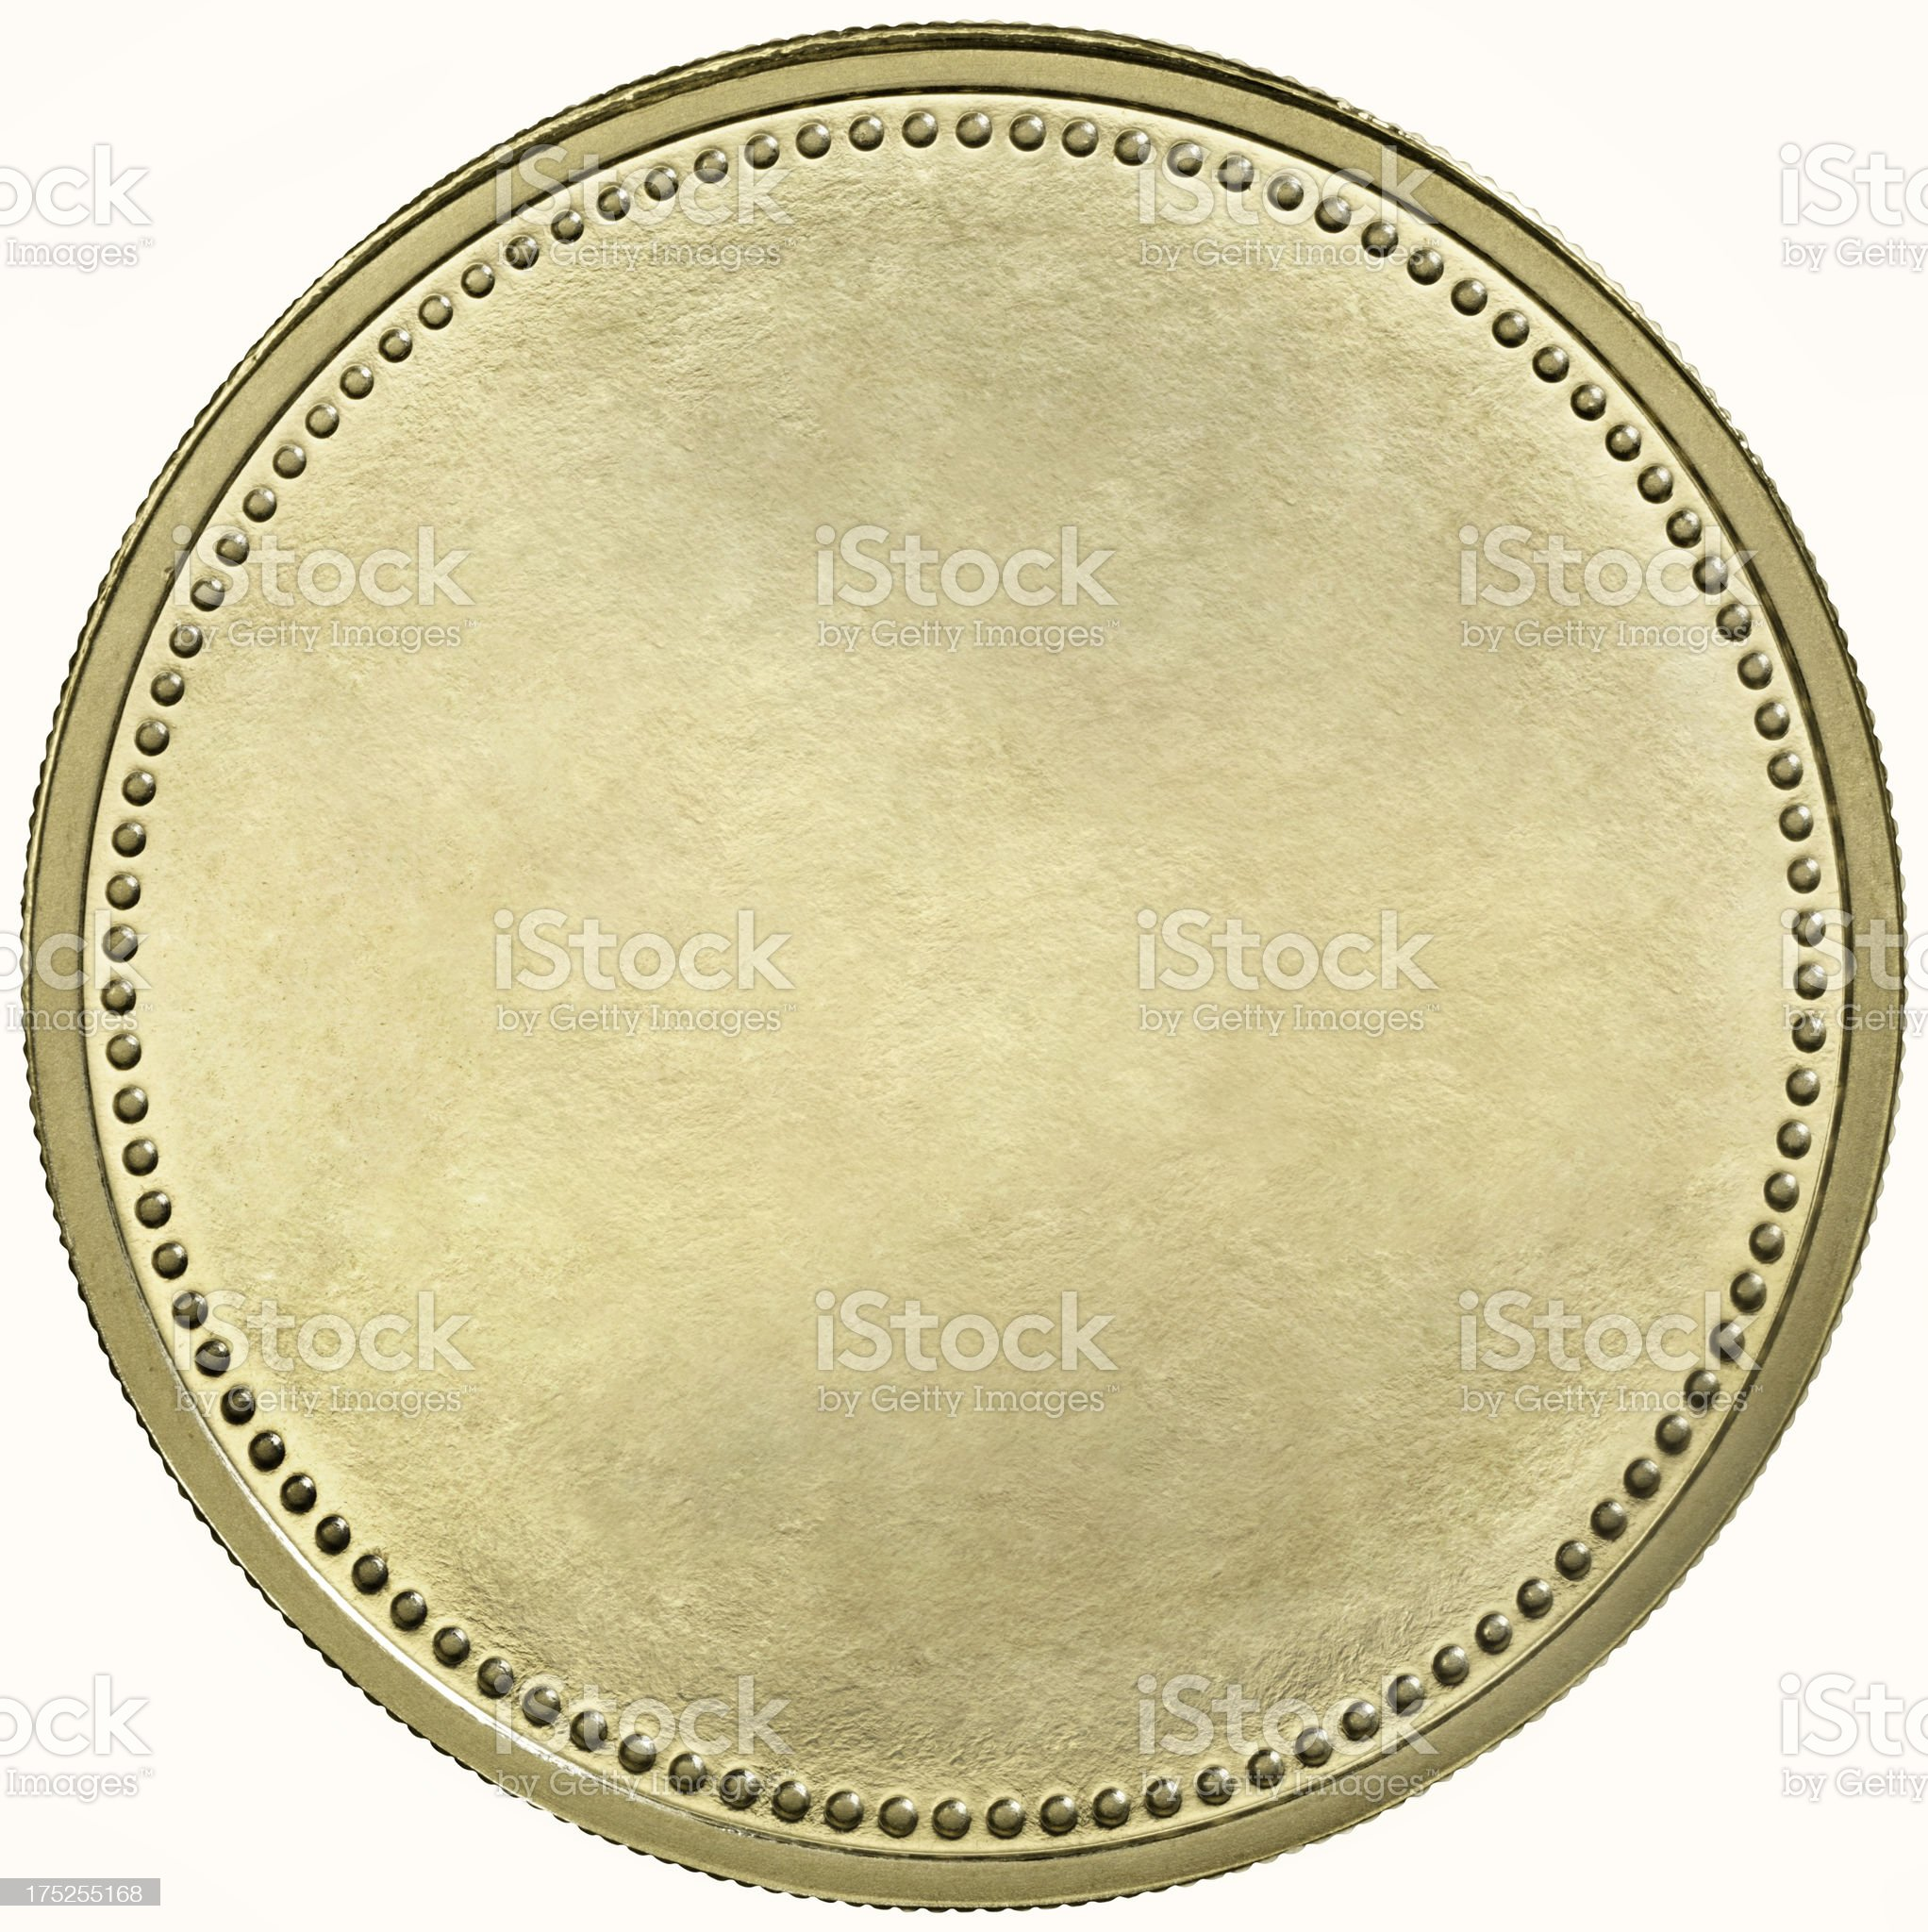 Black gold coin with dotted edge royalty-free stock photo